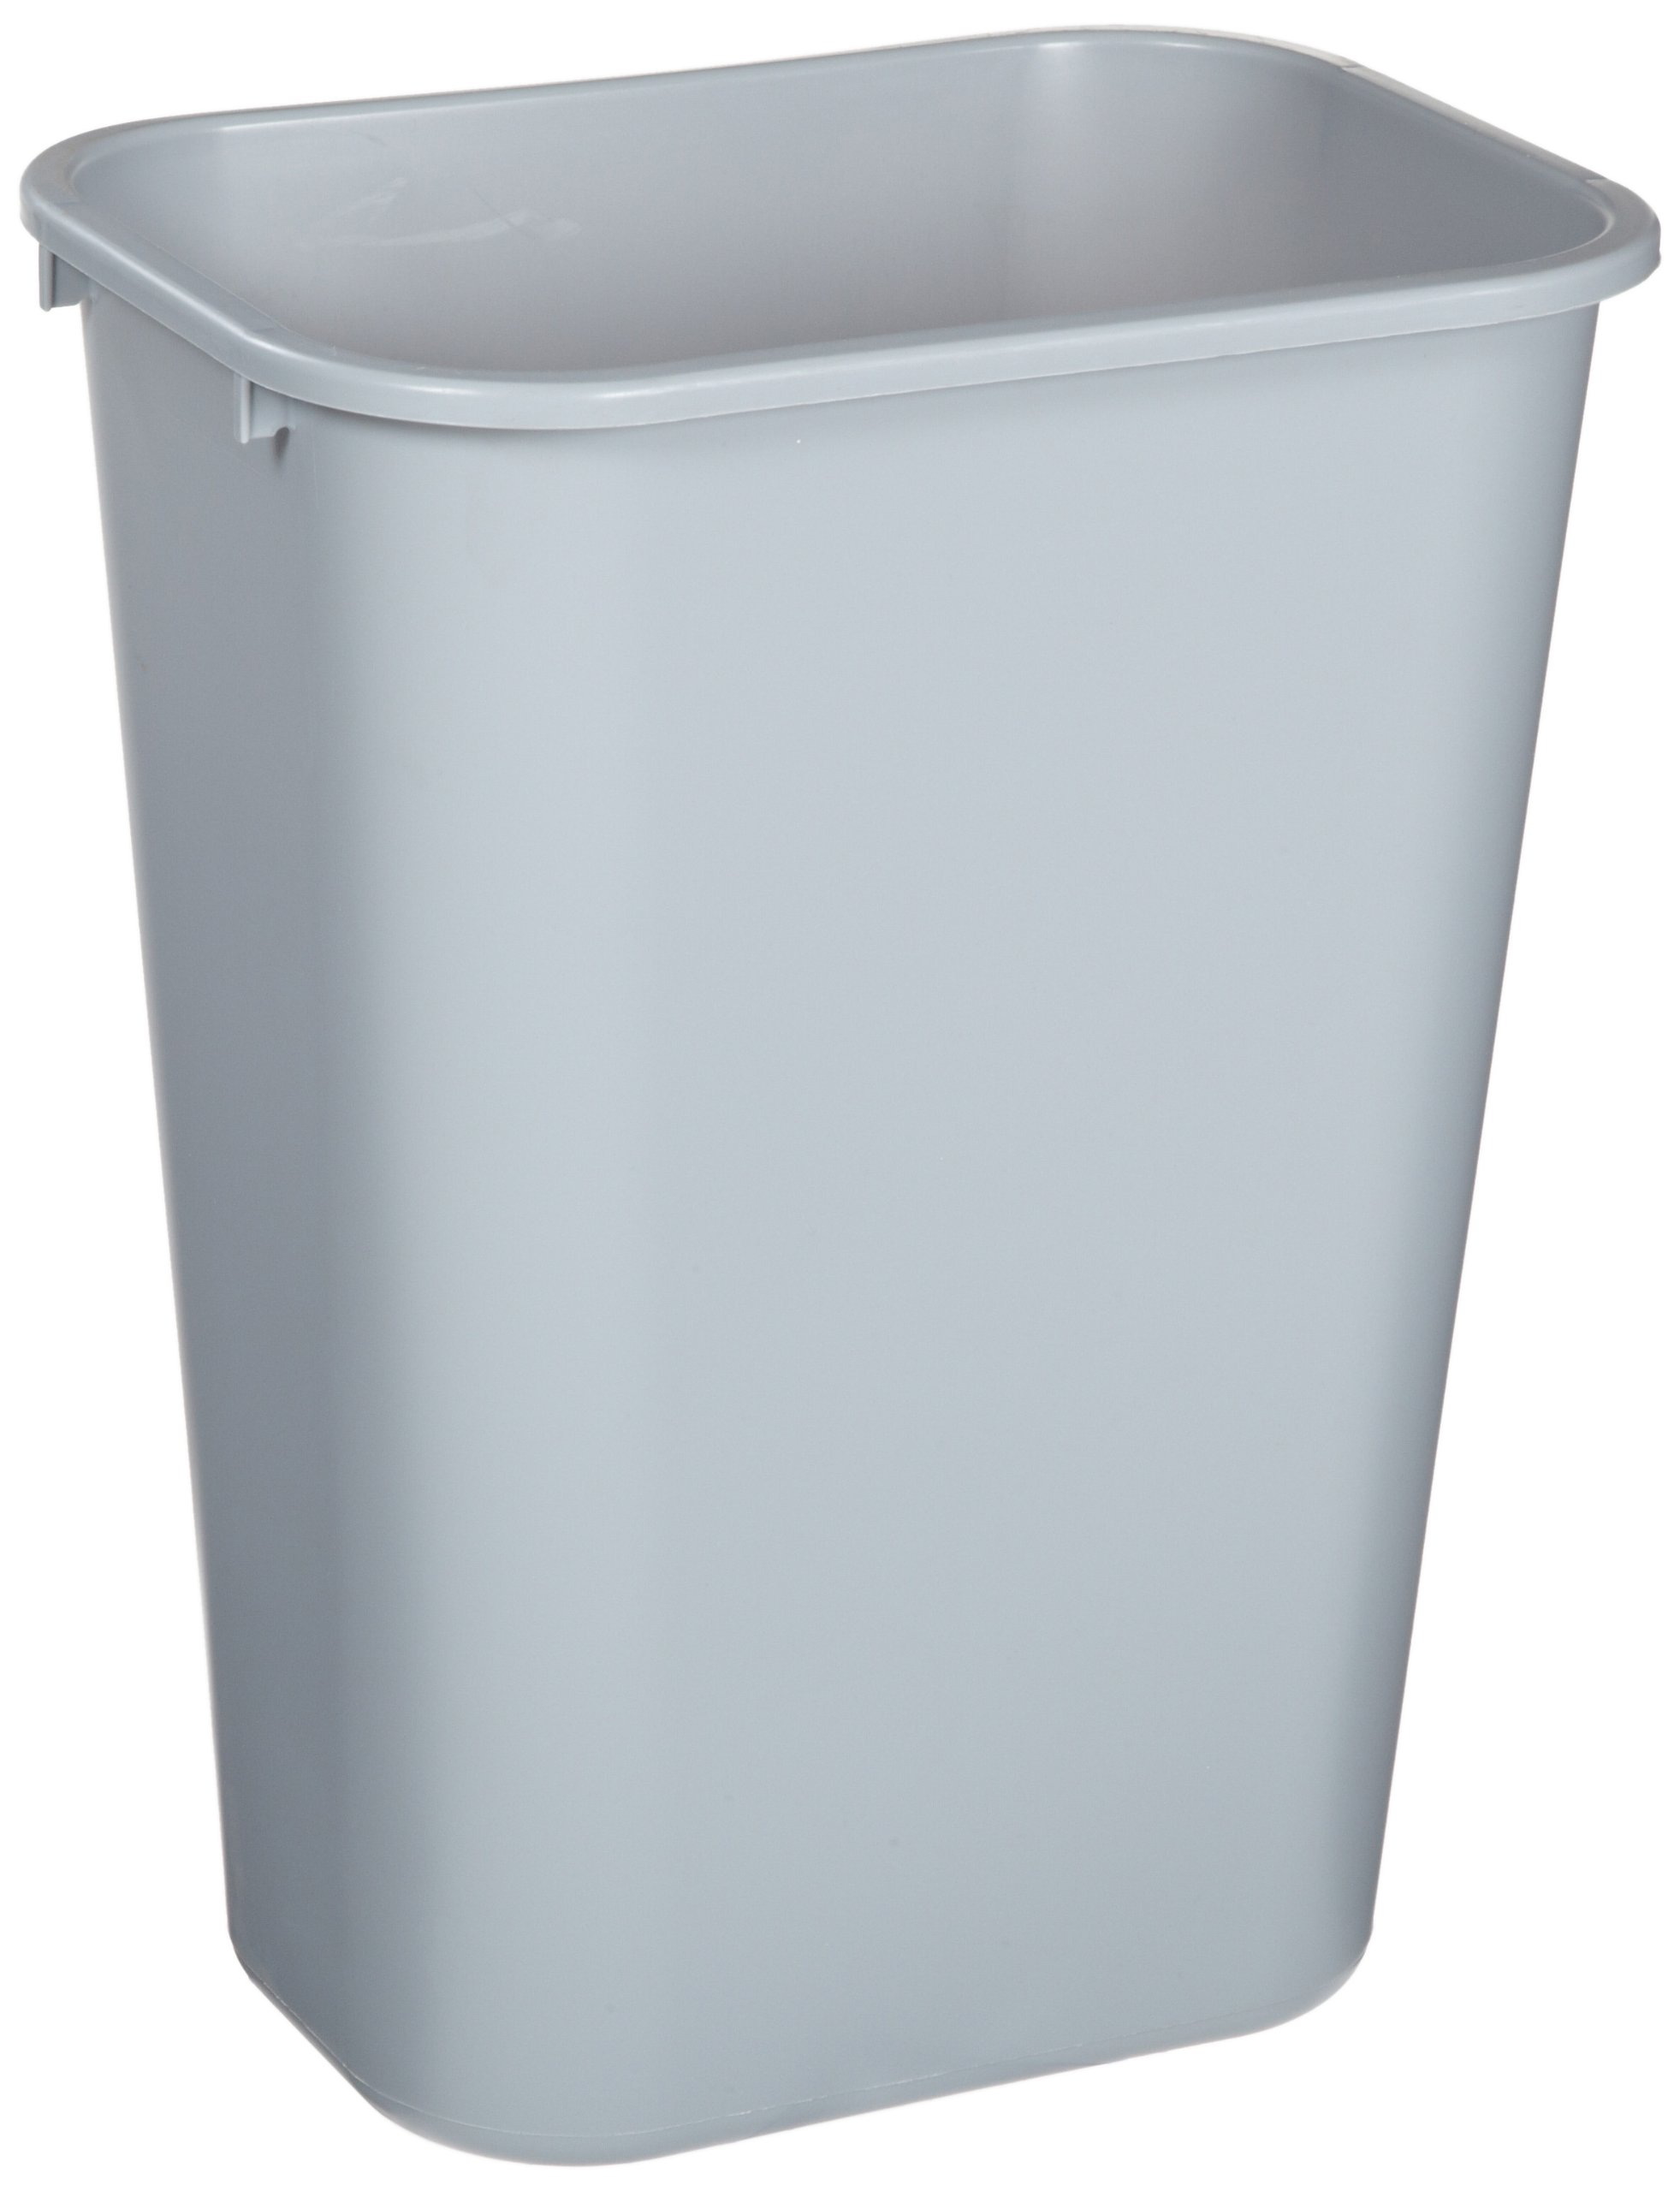 Rubbermaid Commercial Products FG295700GRAY Soft Molded-Plastic Wastebasket (Rectangular, 10.25-Gallon, Pack of 12, Gray) by Rubbermaid Commercial Products